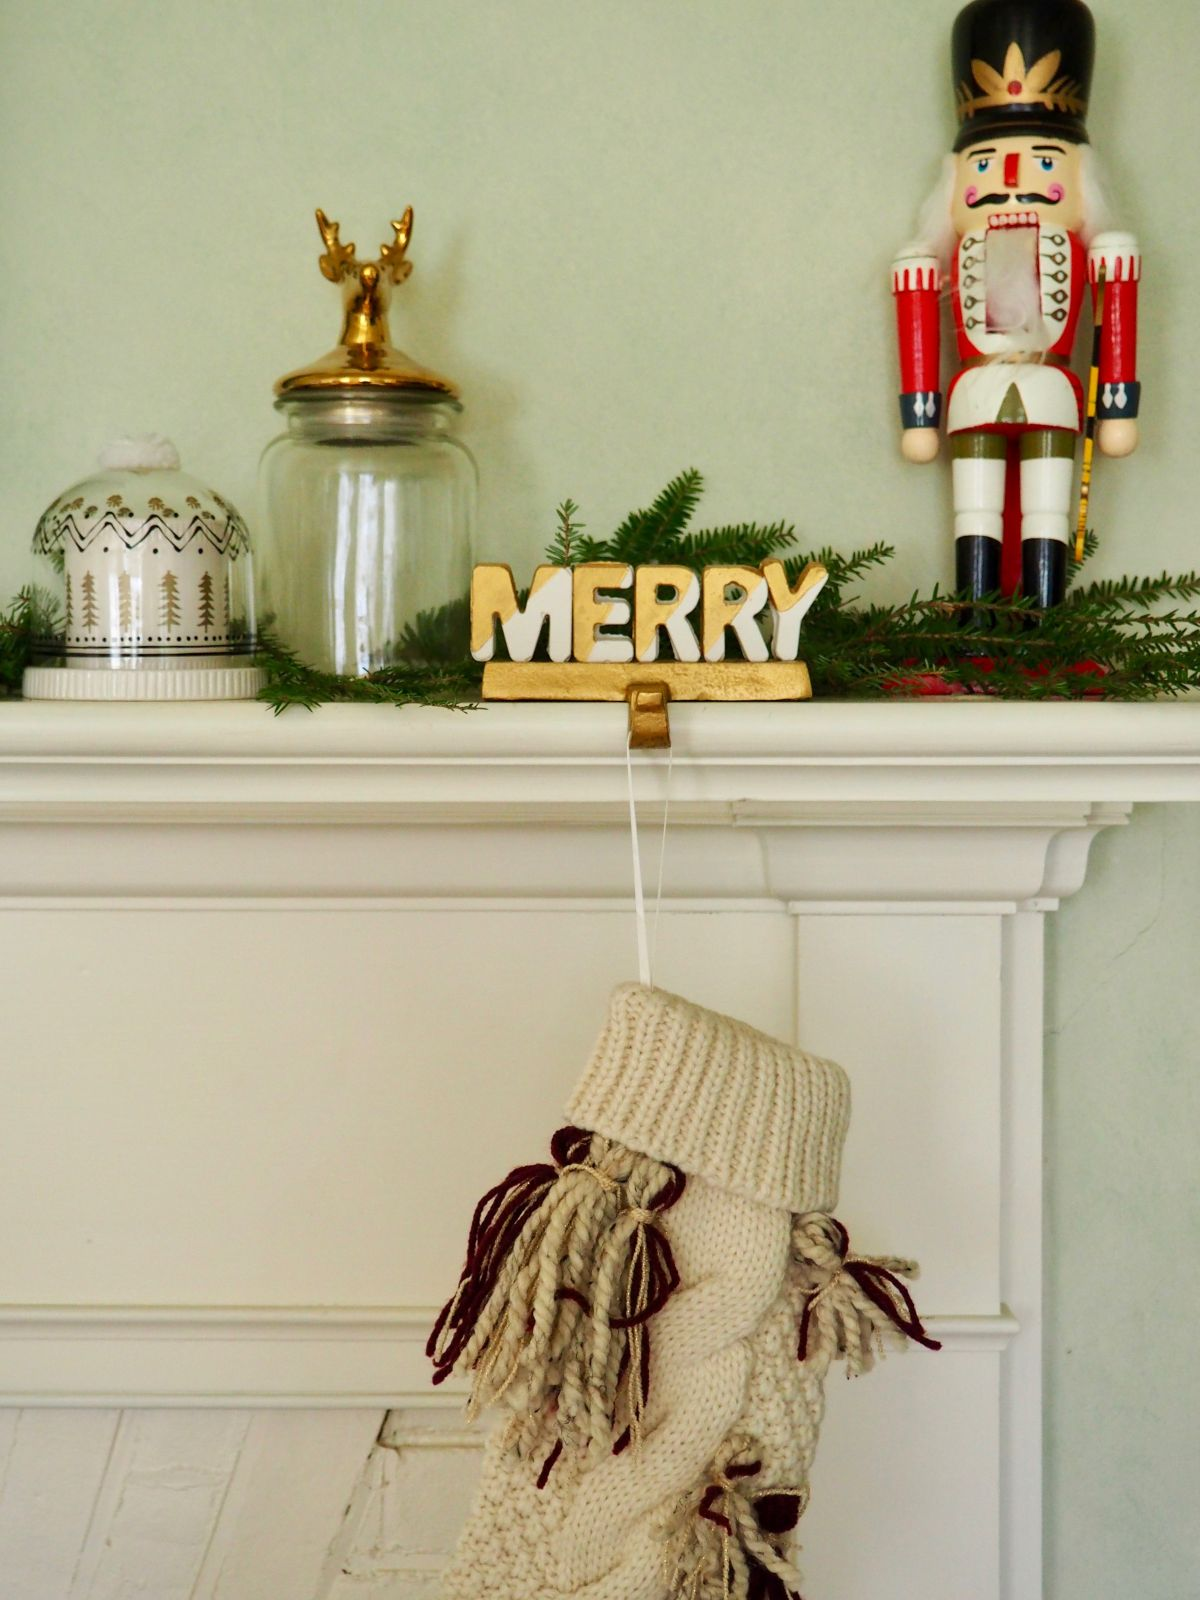 Merry Stocking Holder for your Holiday Mantel